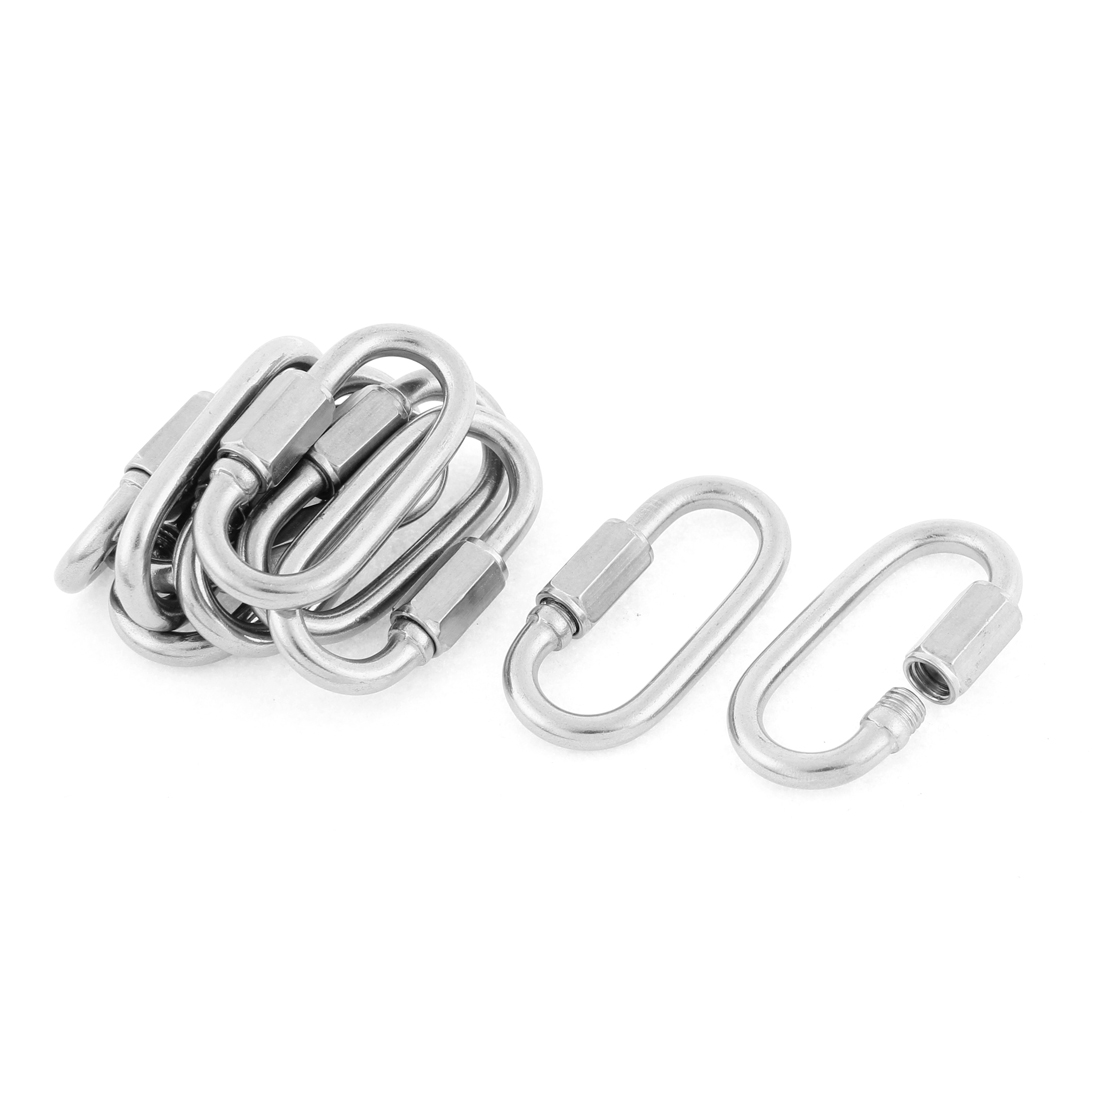 M5 Thickness Multifunctional Stainless Steel Quick Links Carabiners Hook 10pcs